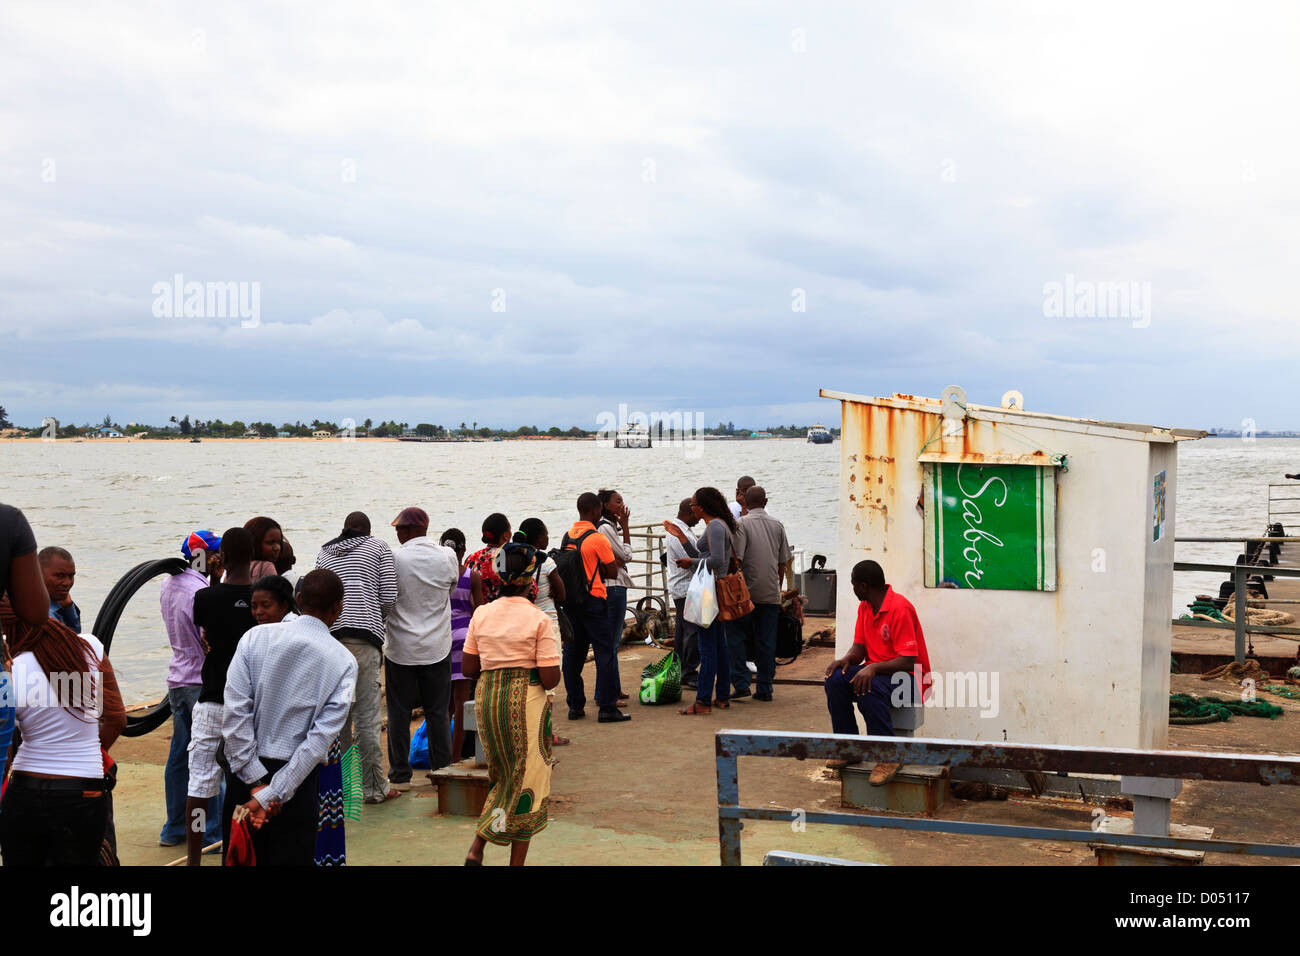 People wait to catch the ferry at Maputo to cross to Catembe in Mozambique Stock Photo